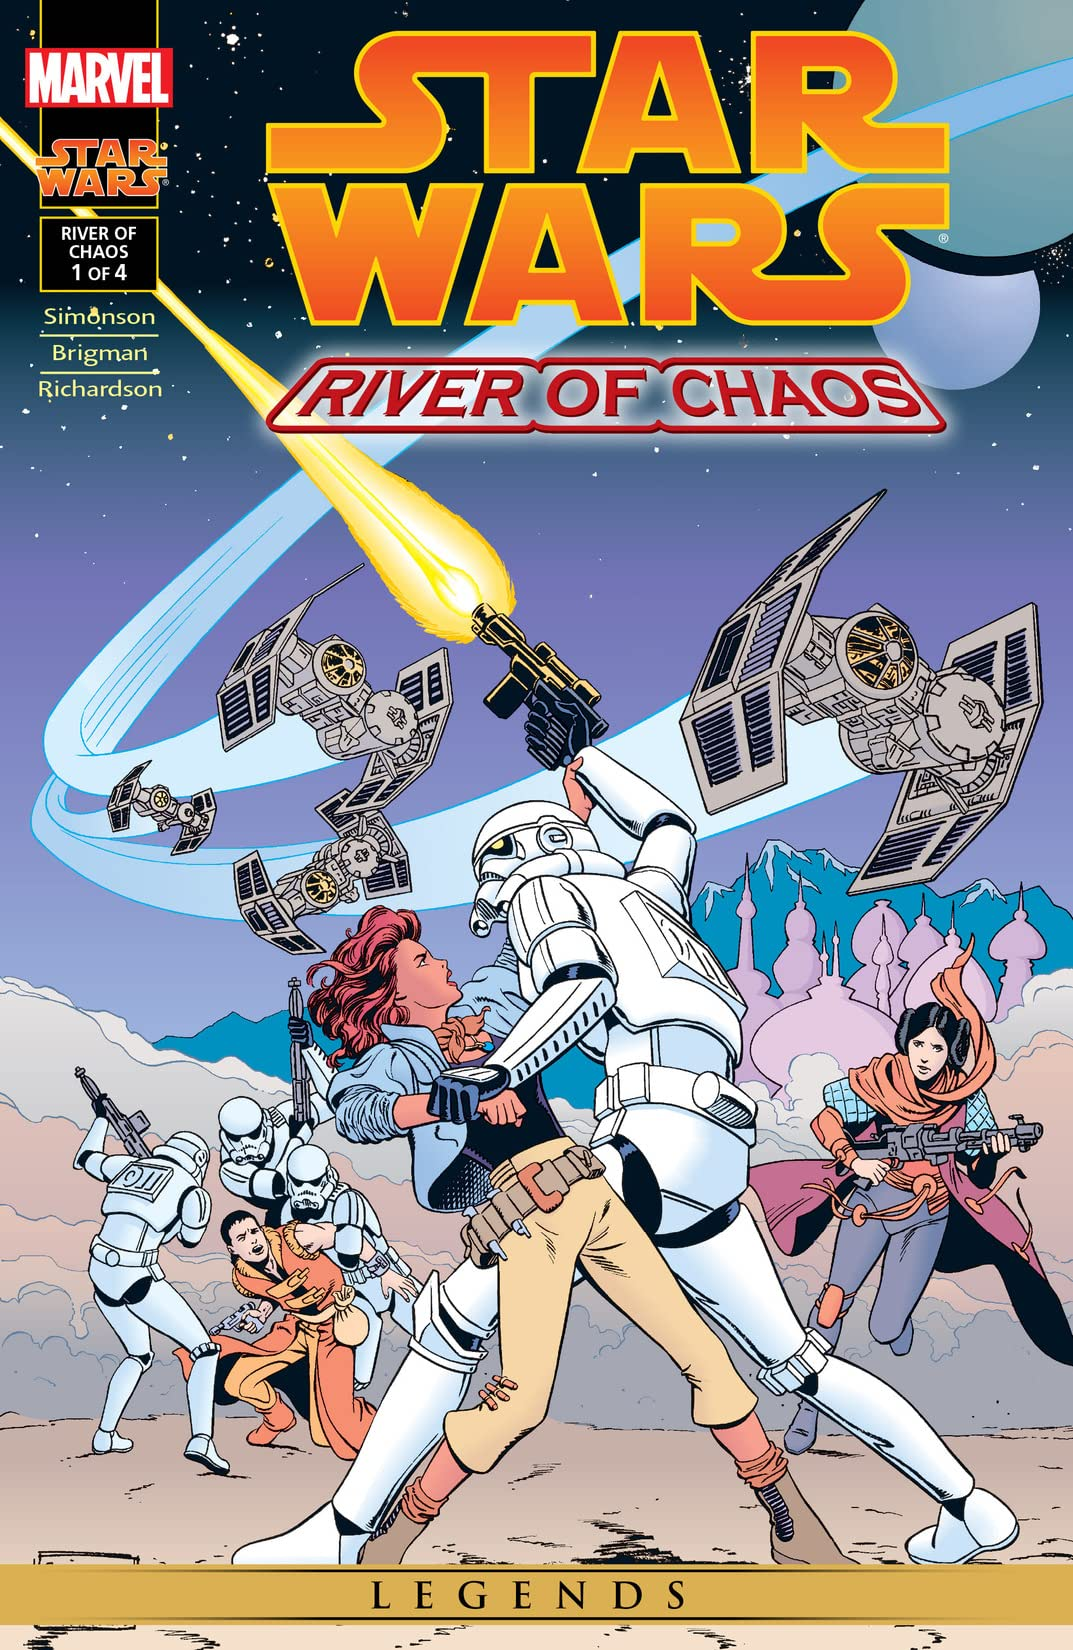 Star Wars: River of Chaos (1995) #1 (of 4)